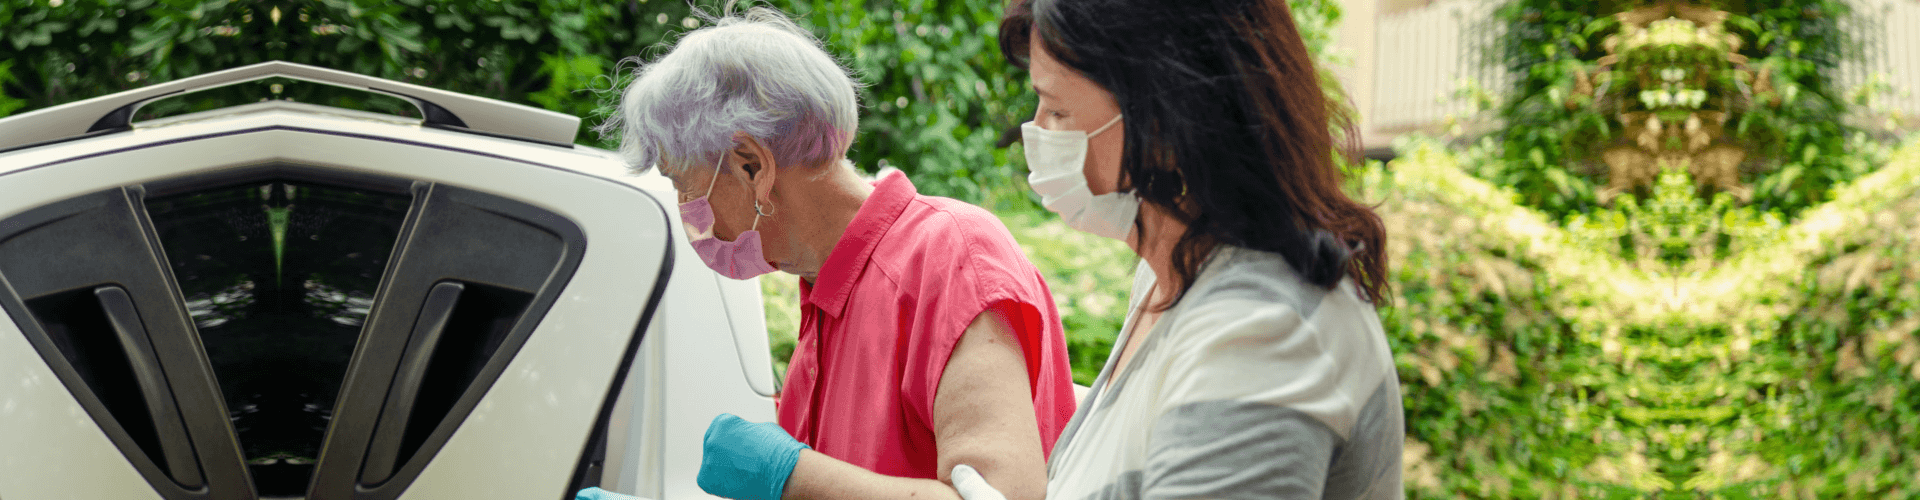 caregiver helping patient going inside a car